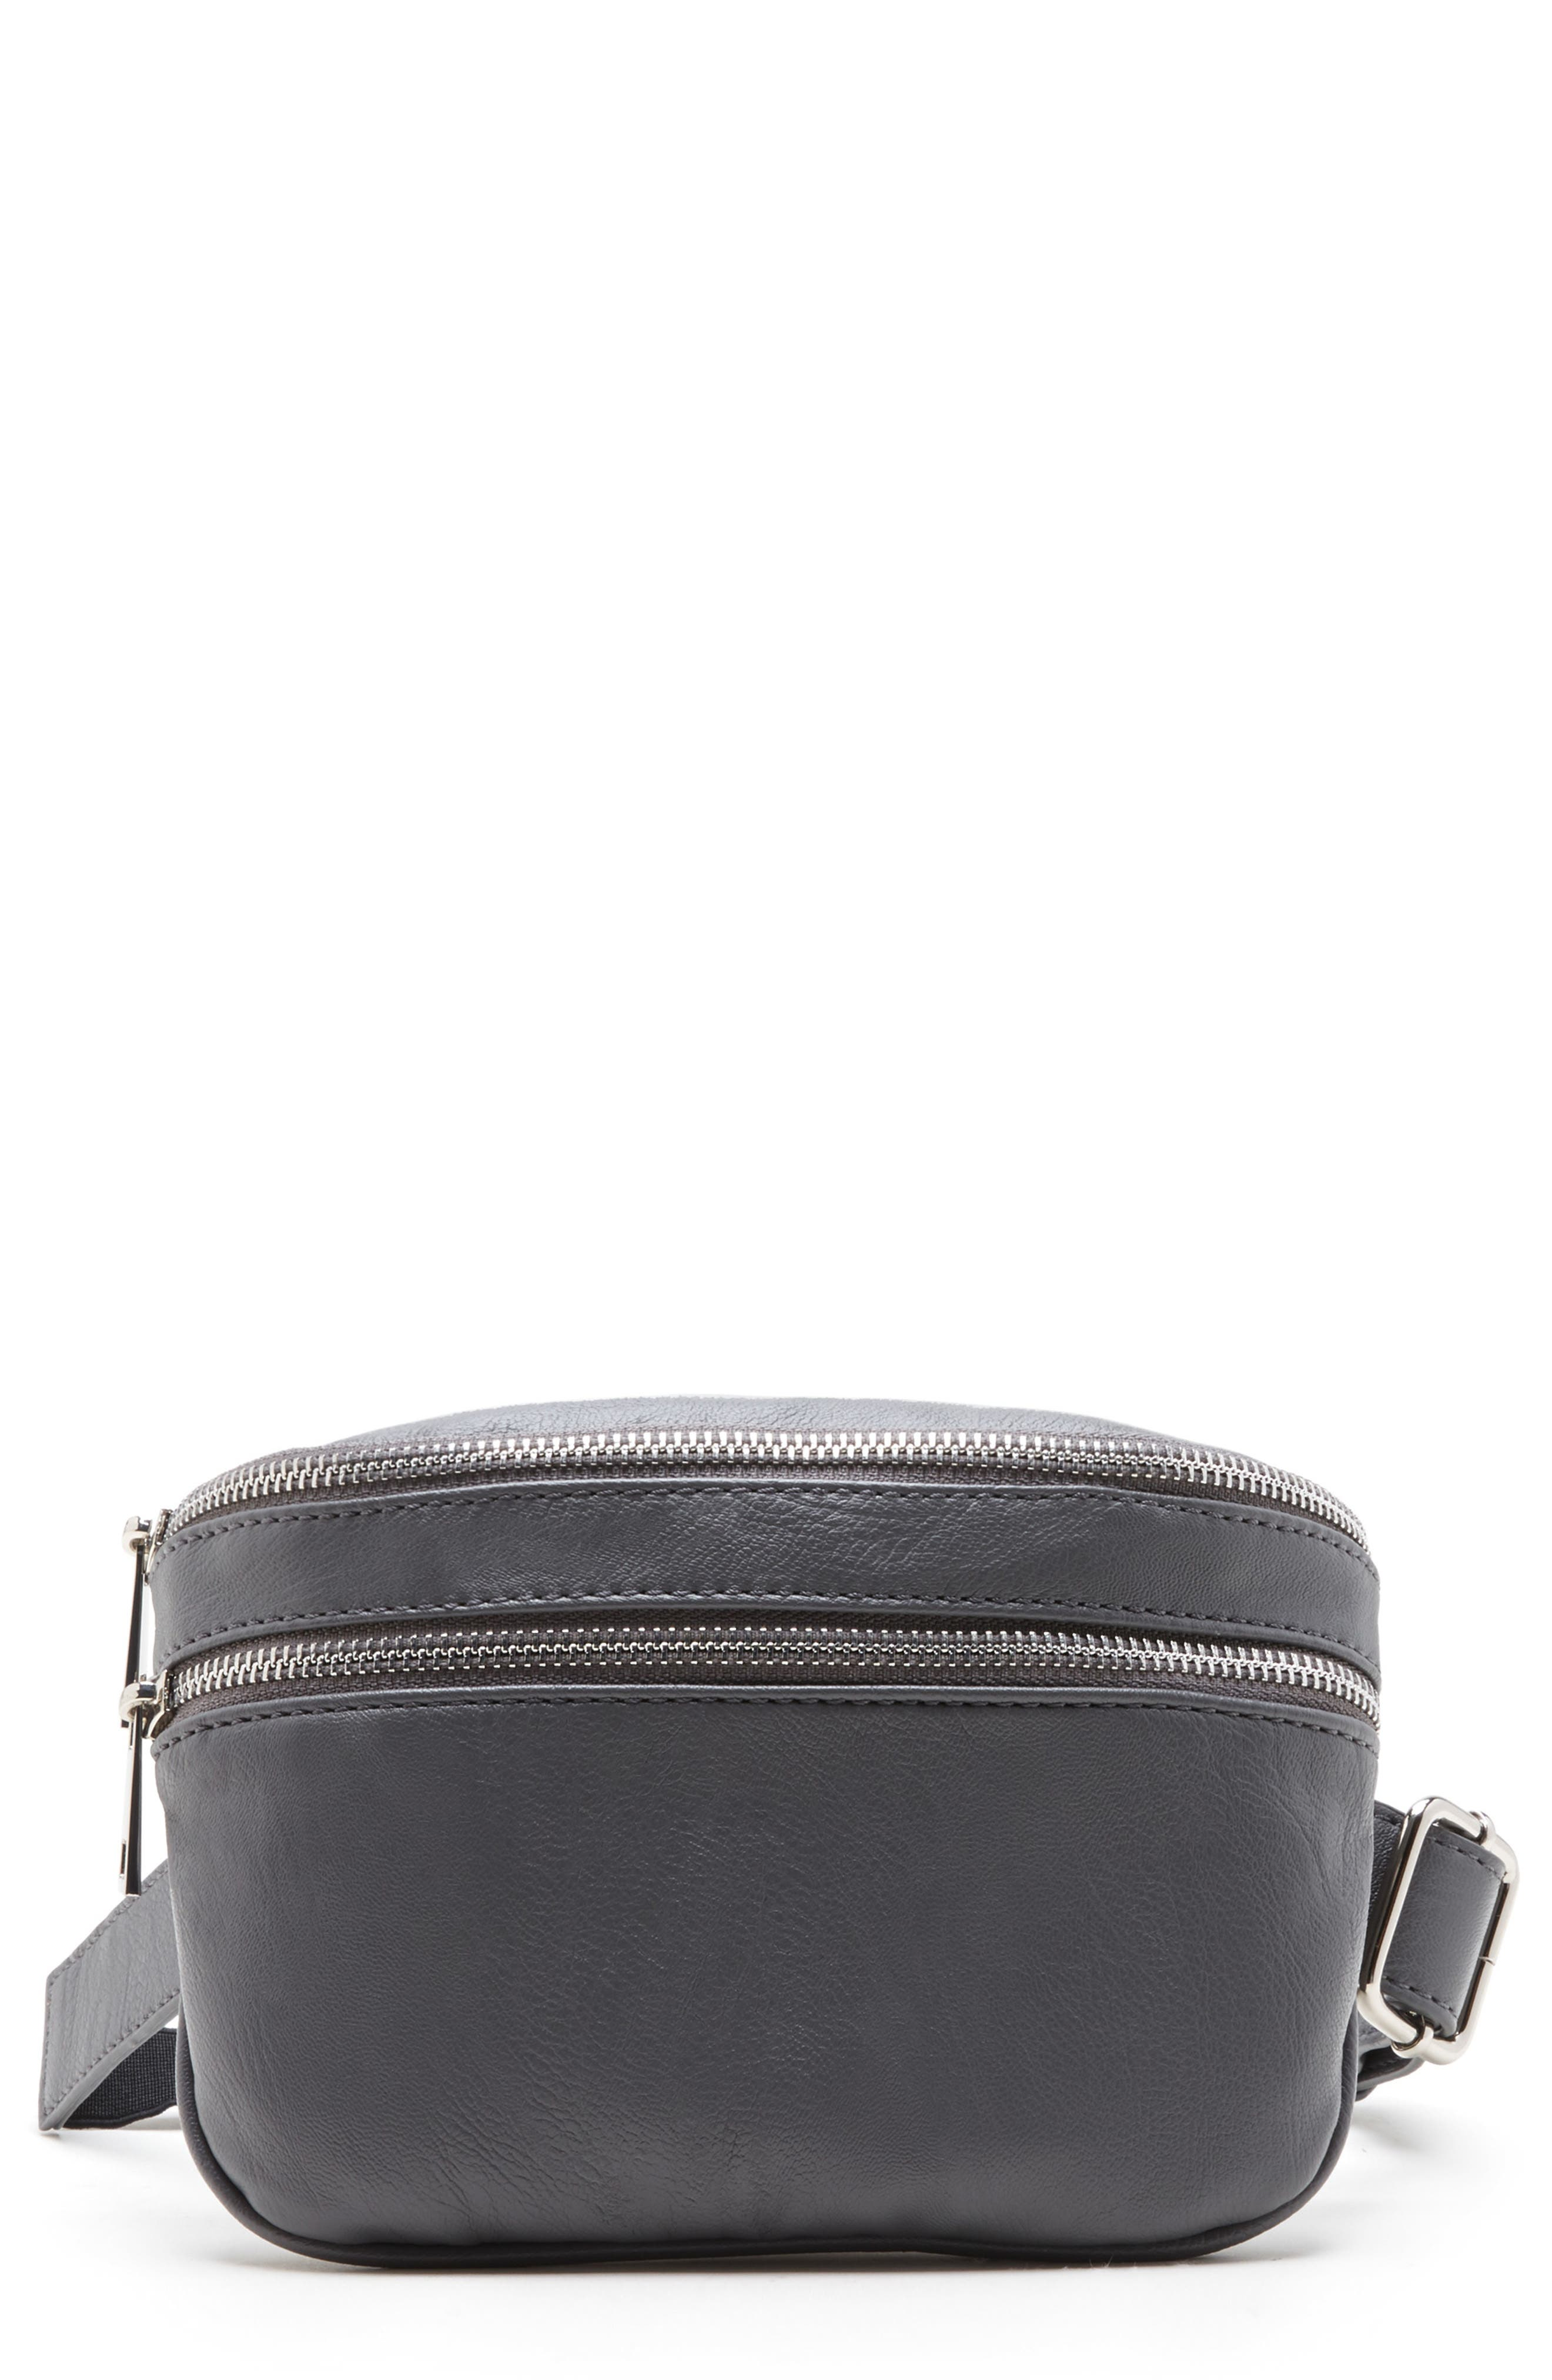 SOLE SOCIETY Cadee Faux Leather Belt Bag, Main, color, CHARCOAL